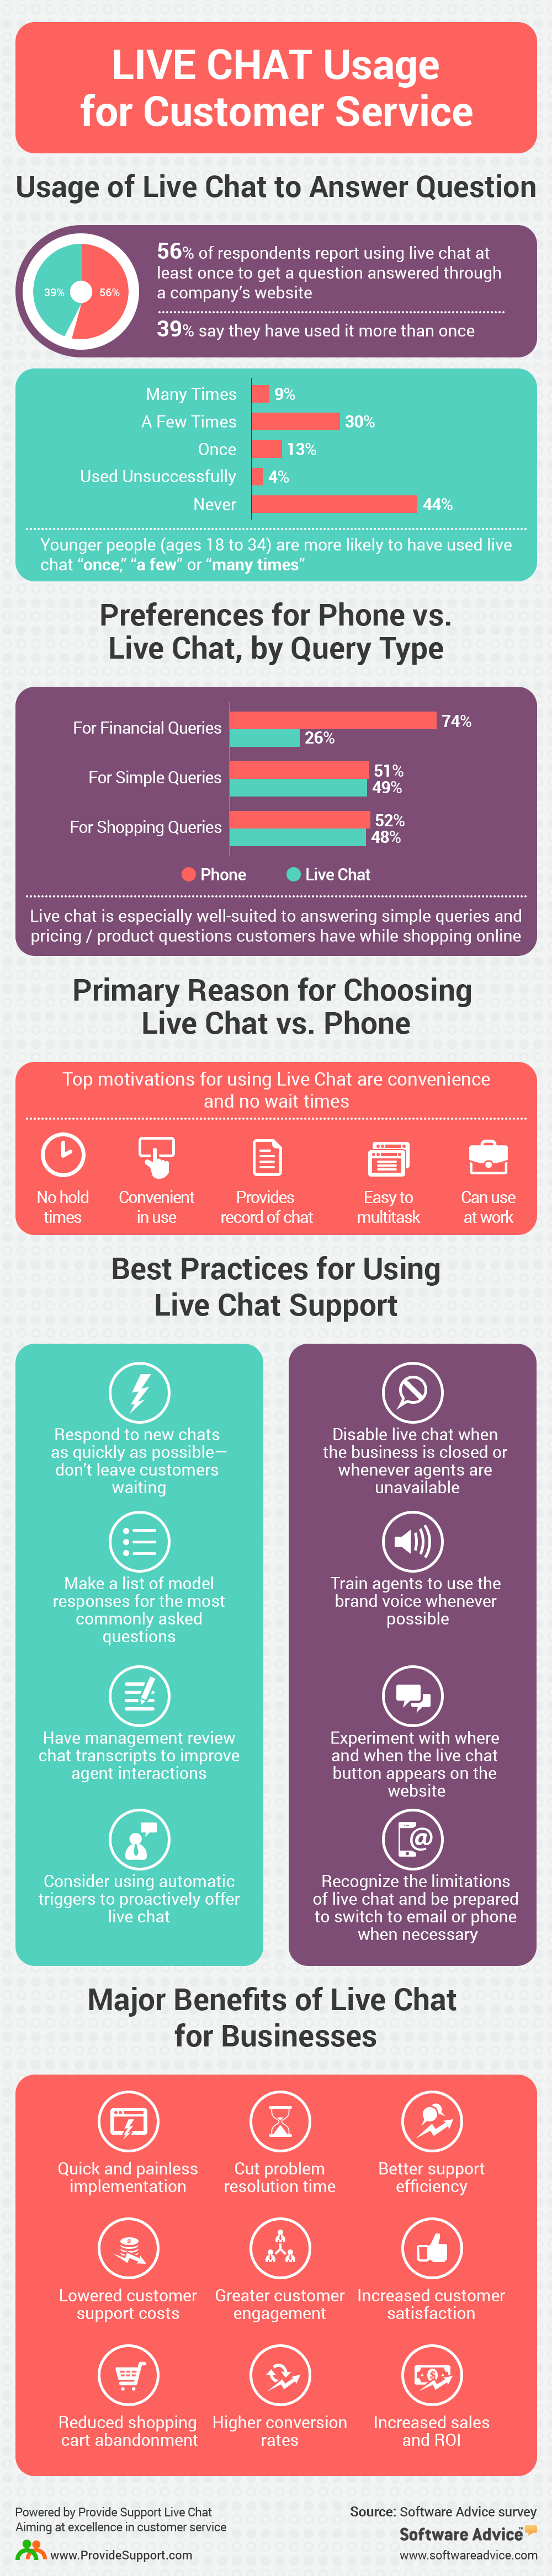 Live chat usage for customer service infographic provide support